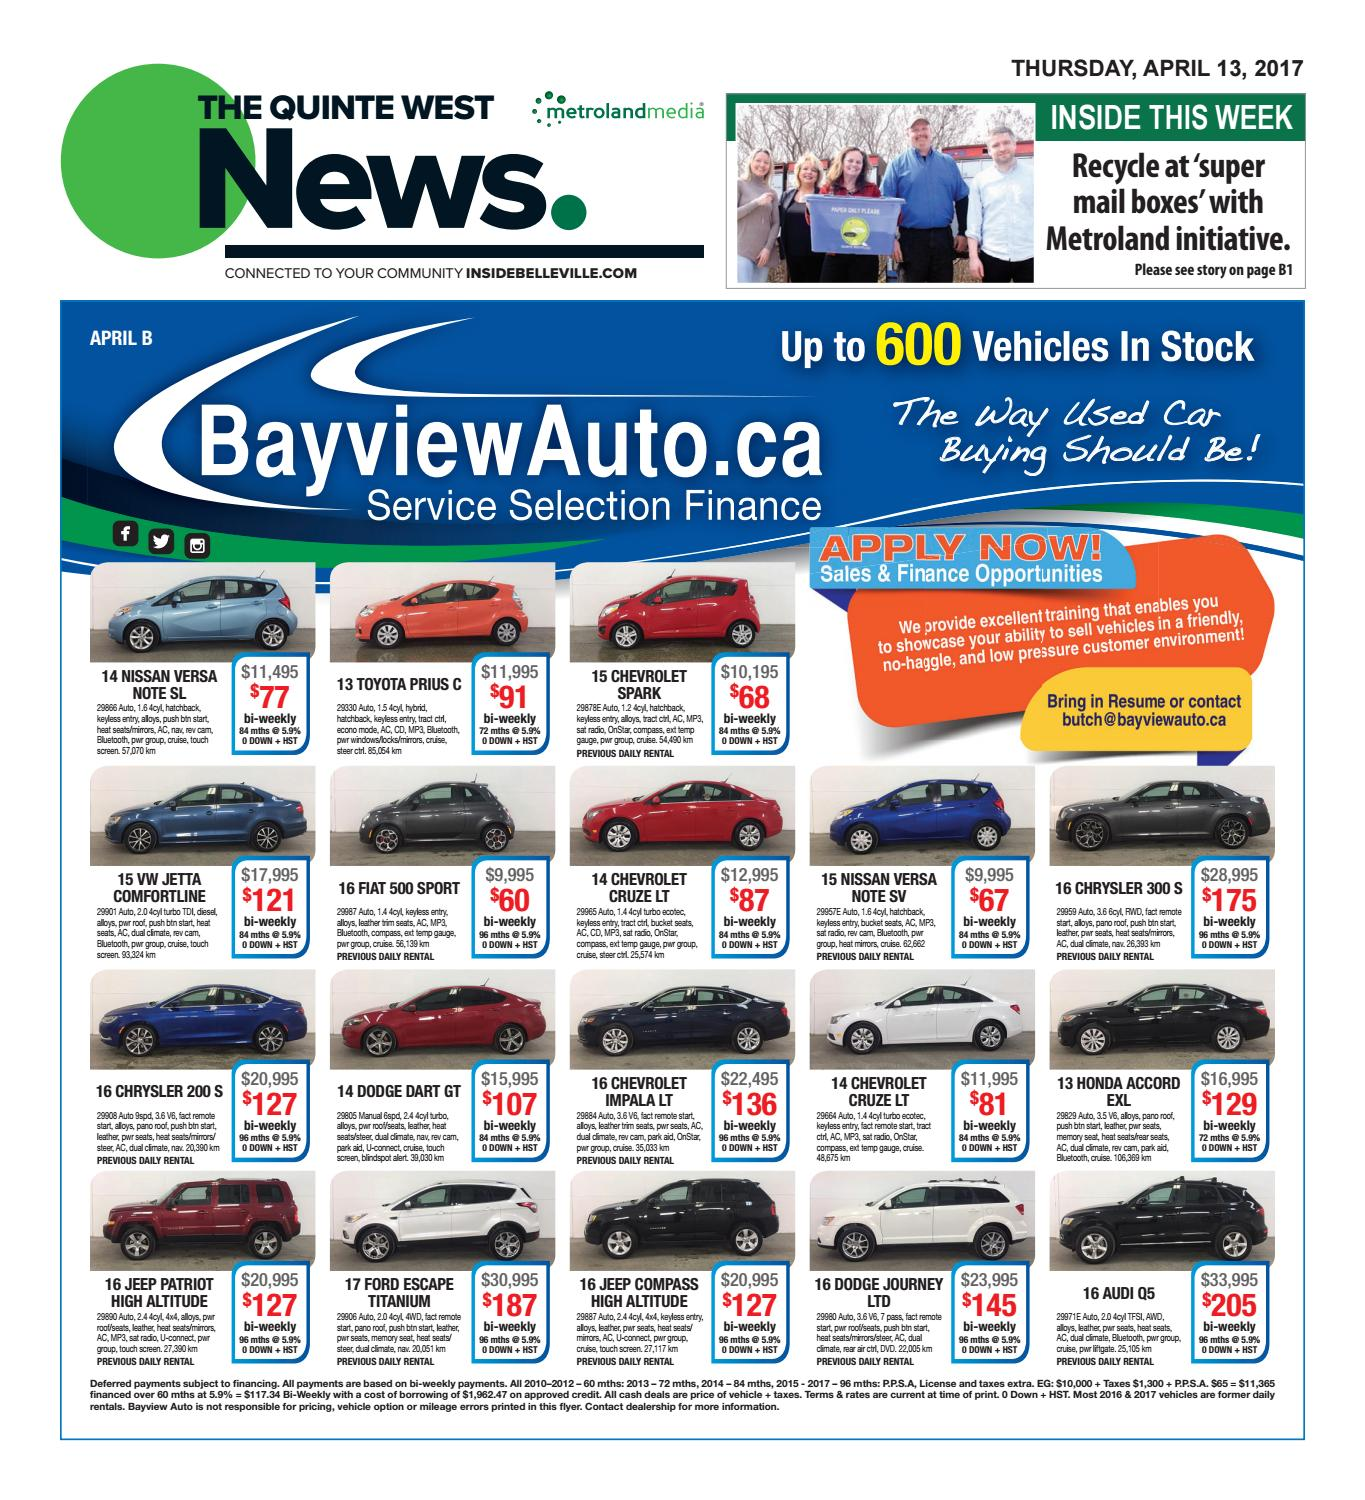 Quinte041317 by Metroland East - Quinte West News - issuu